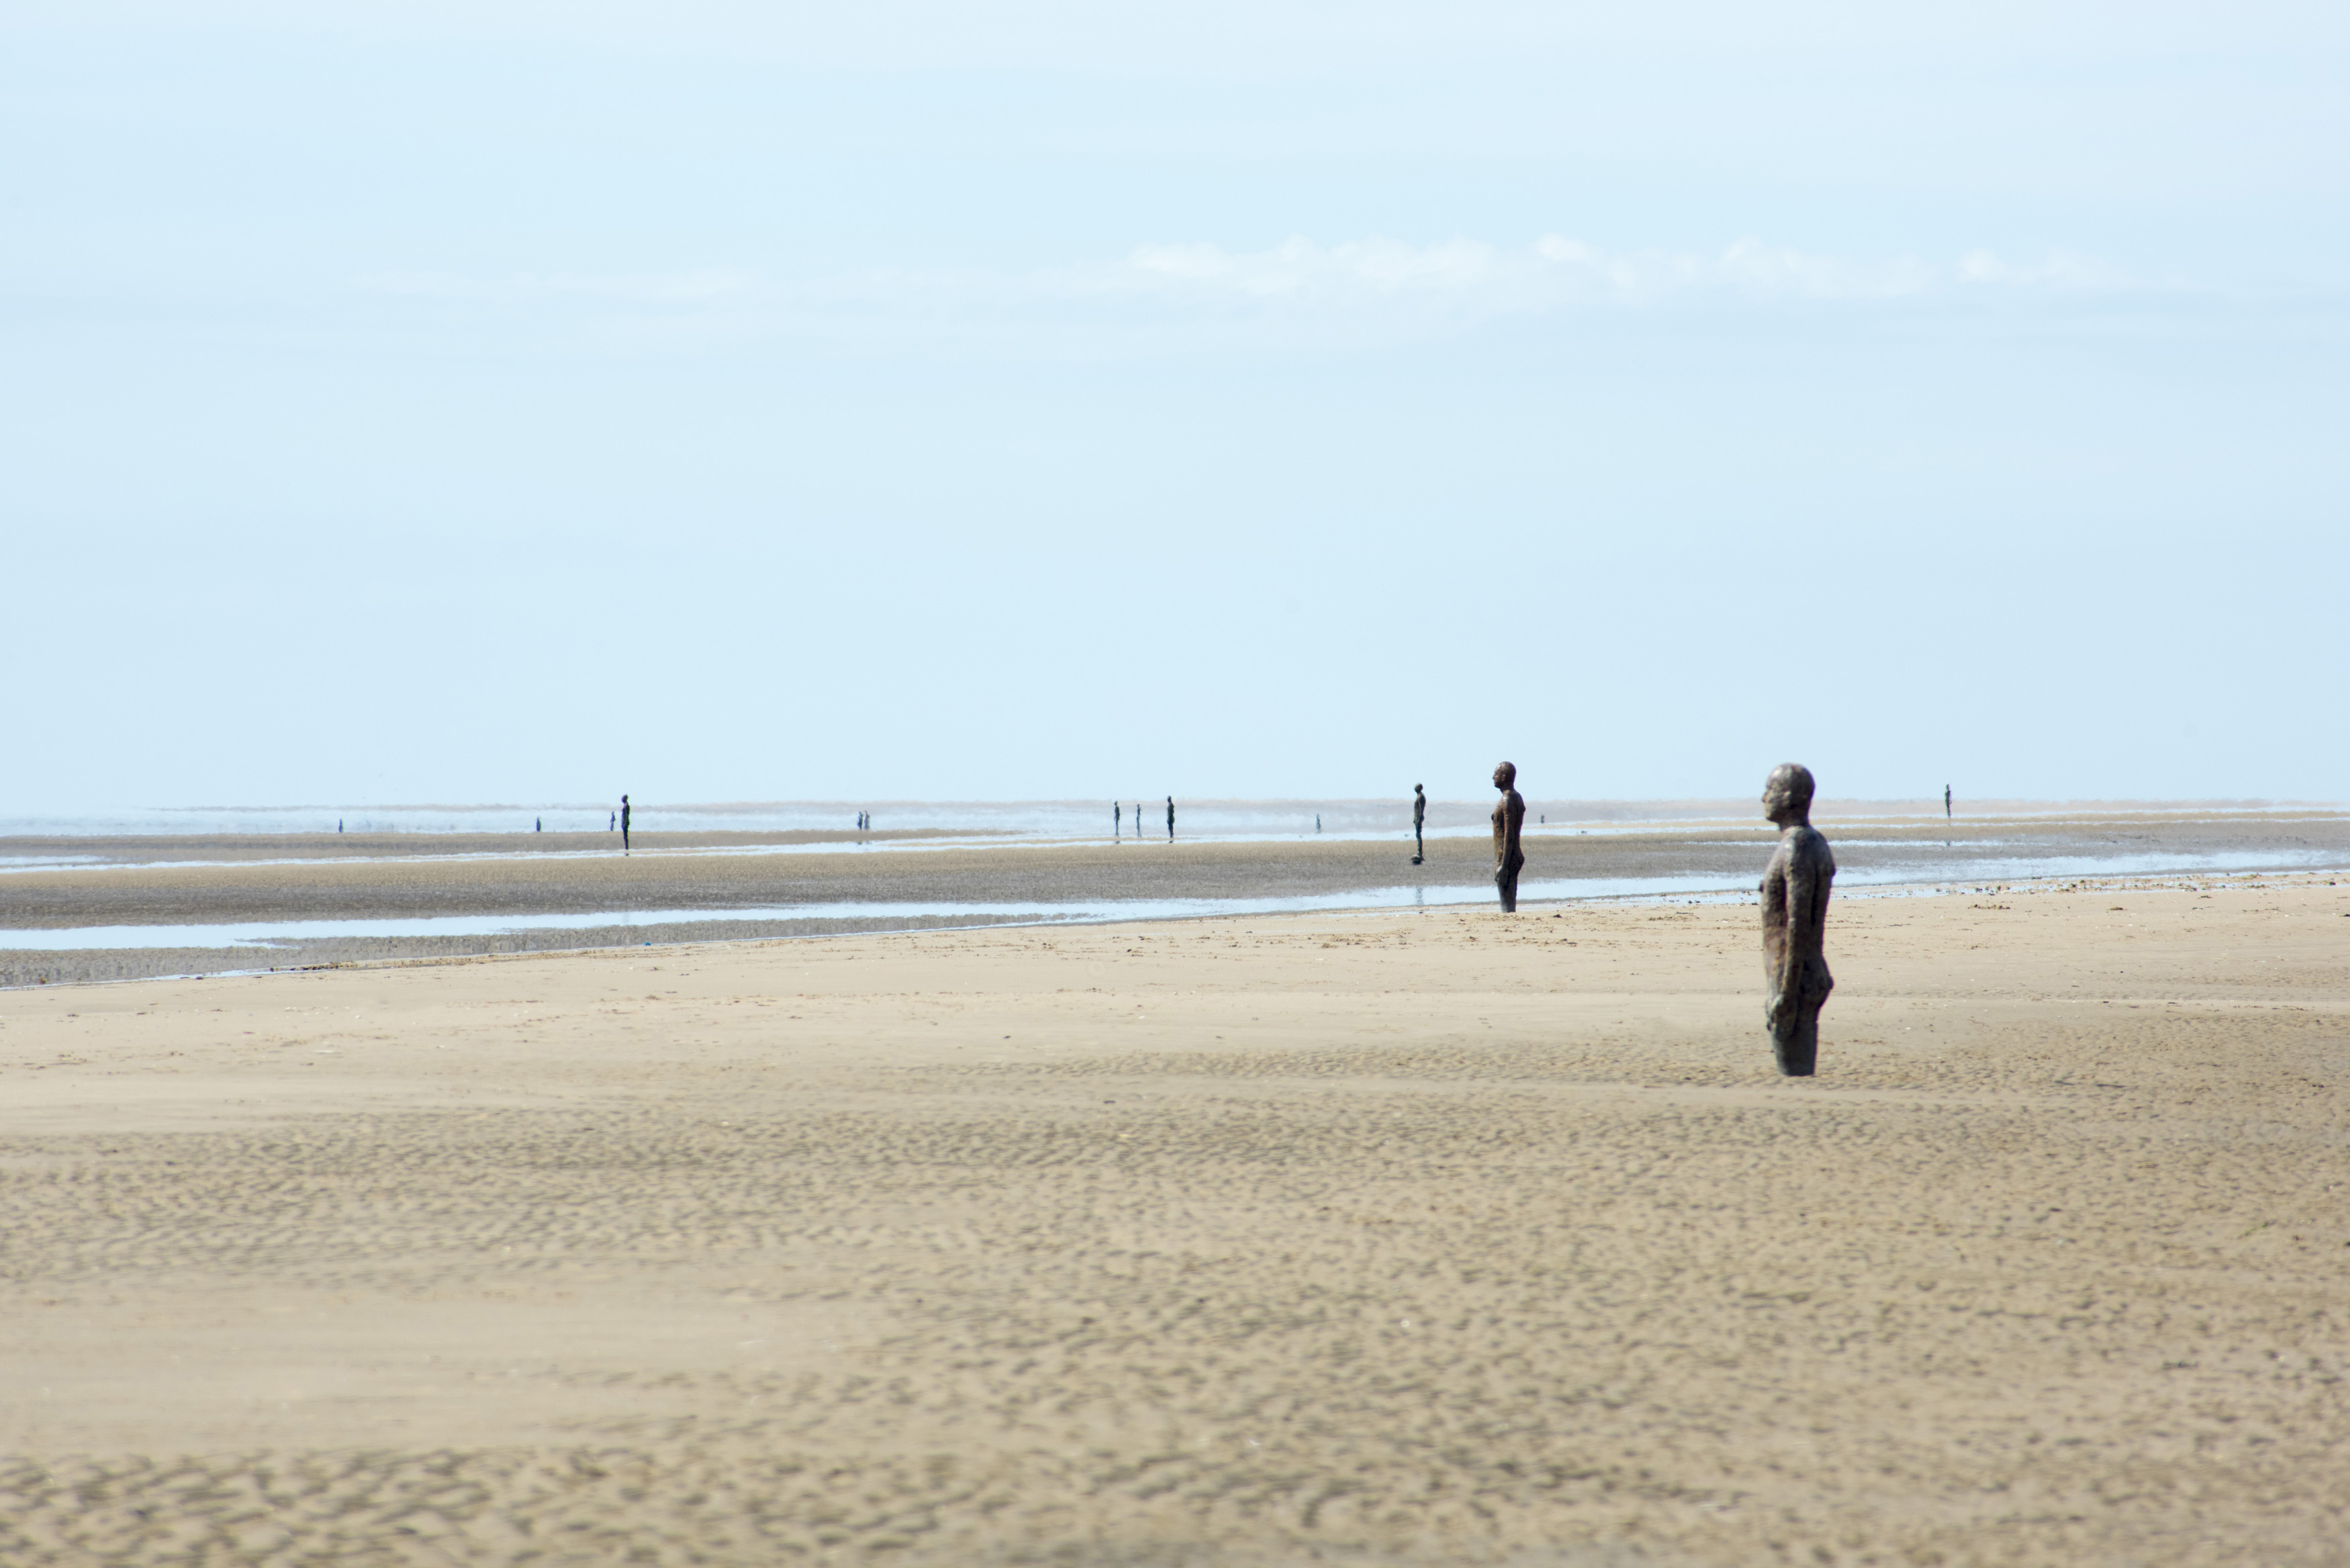 Another Place by Antony Gormley, Crosby Beach, Liverpool with 100 cast iron statues standing facing out towards the ocean